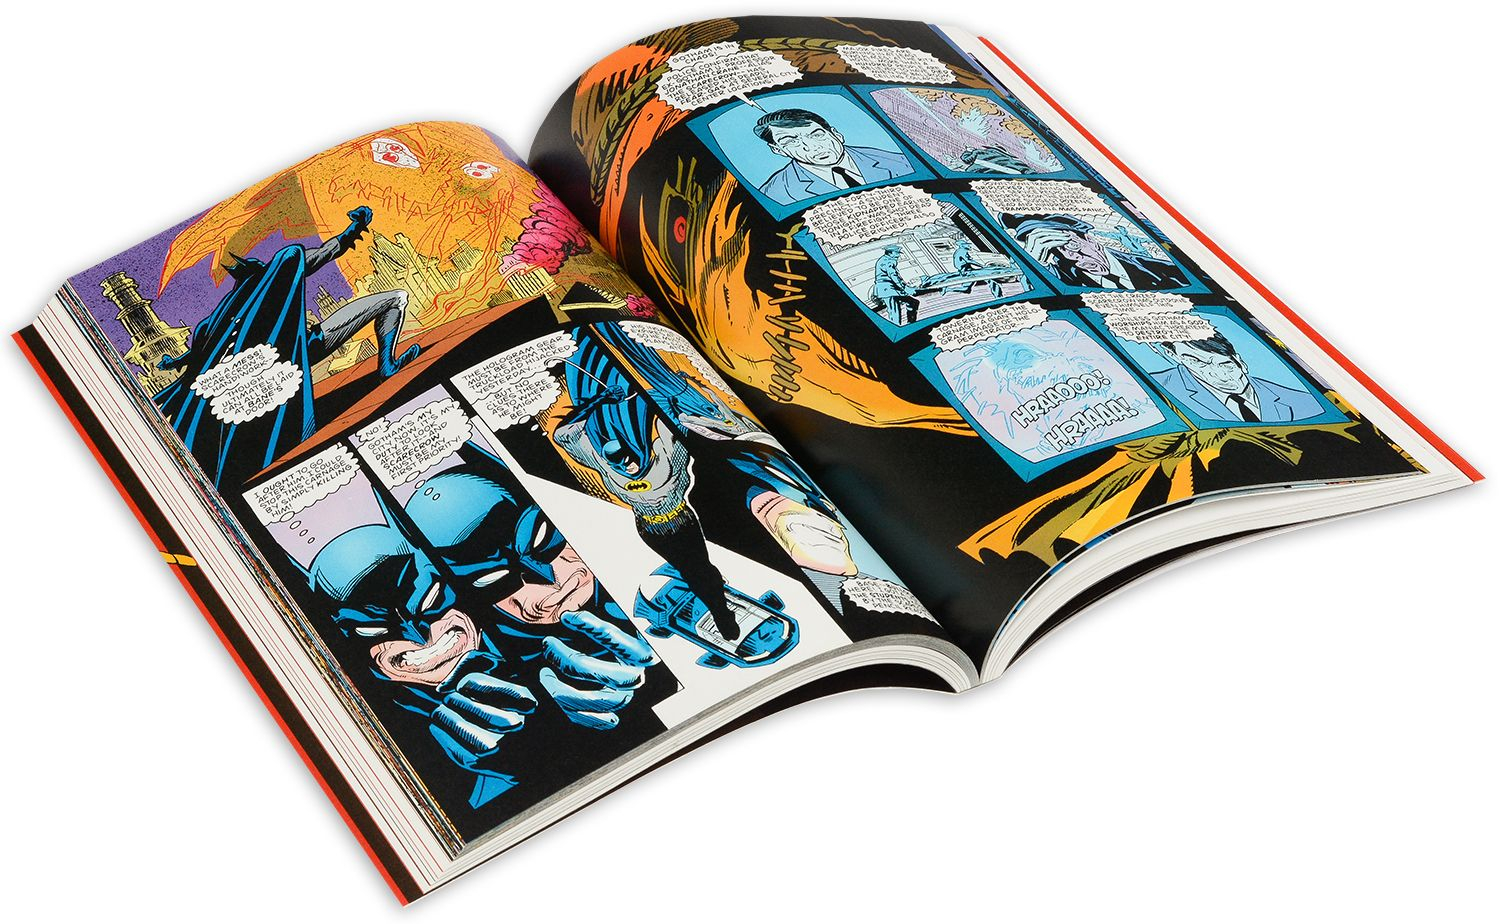 Batman: Knightfall Vol. 2 (25th Anniversary Edition)-8 - 9